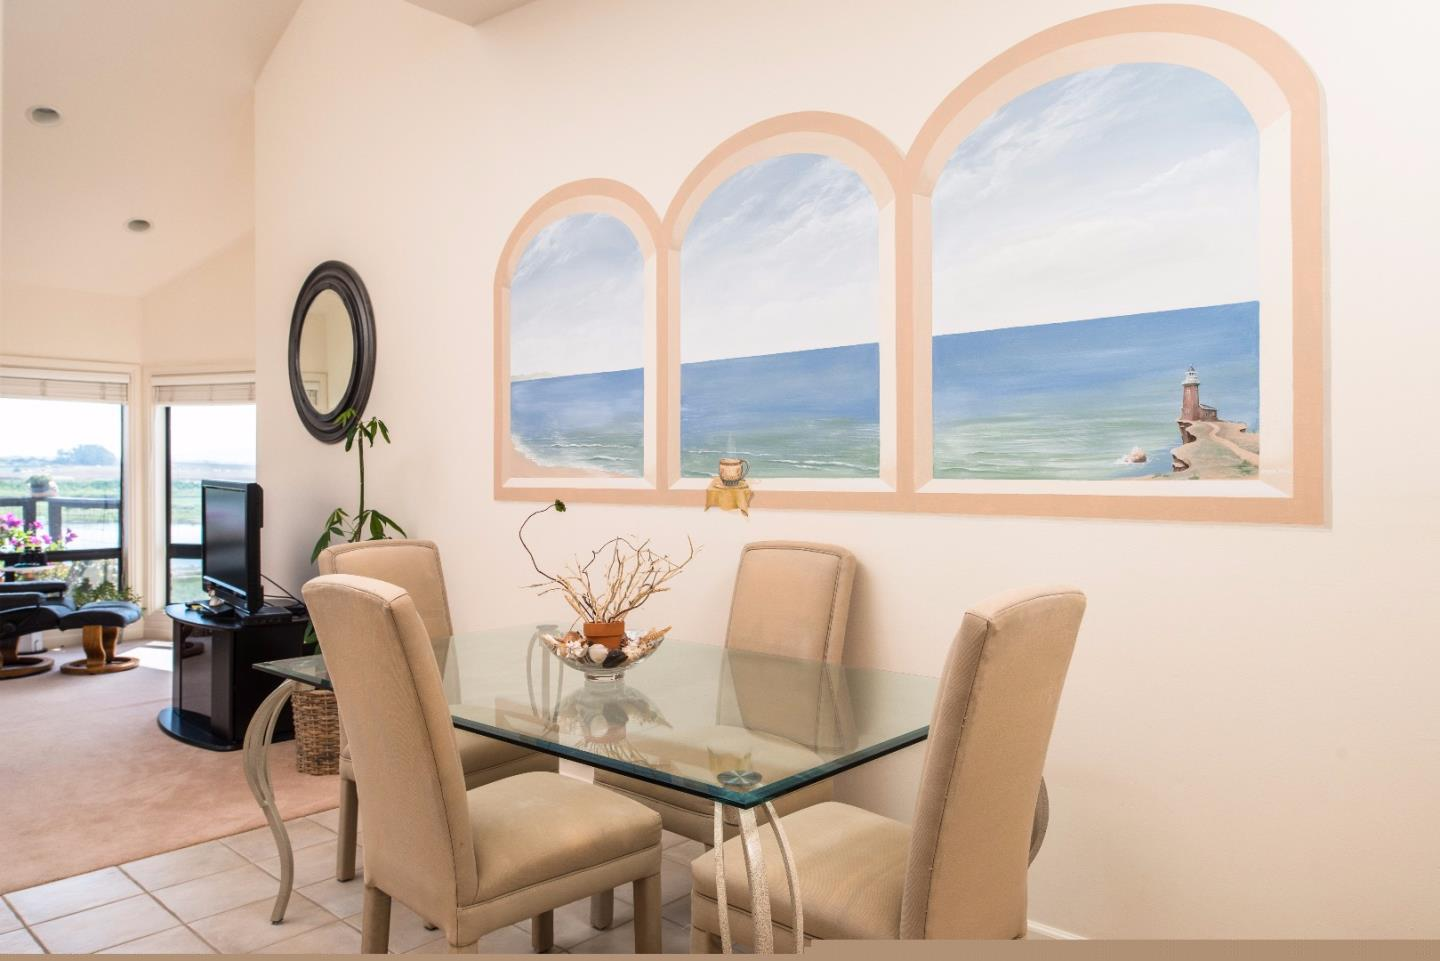 Additional photo for property listing at 72 Pelican Point 72 Pelican Point Watsonville, Kalifornien 95076 Vereinigte Staaten